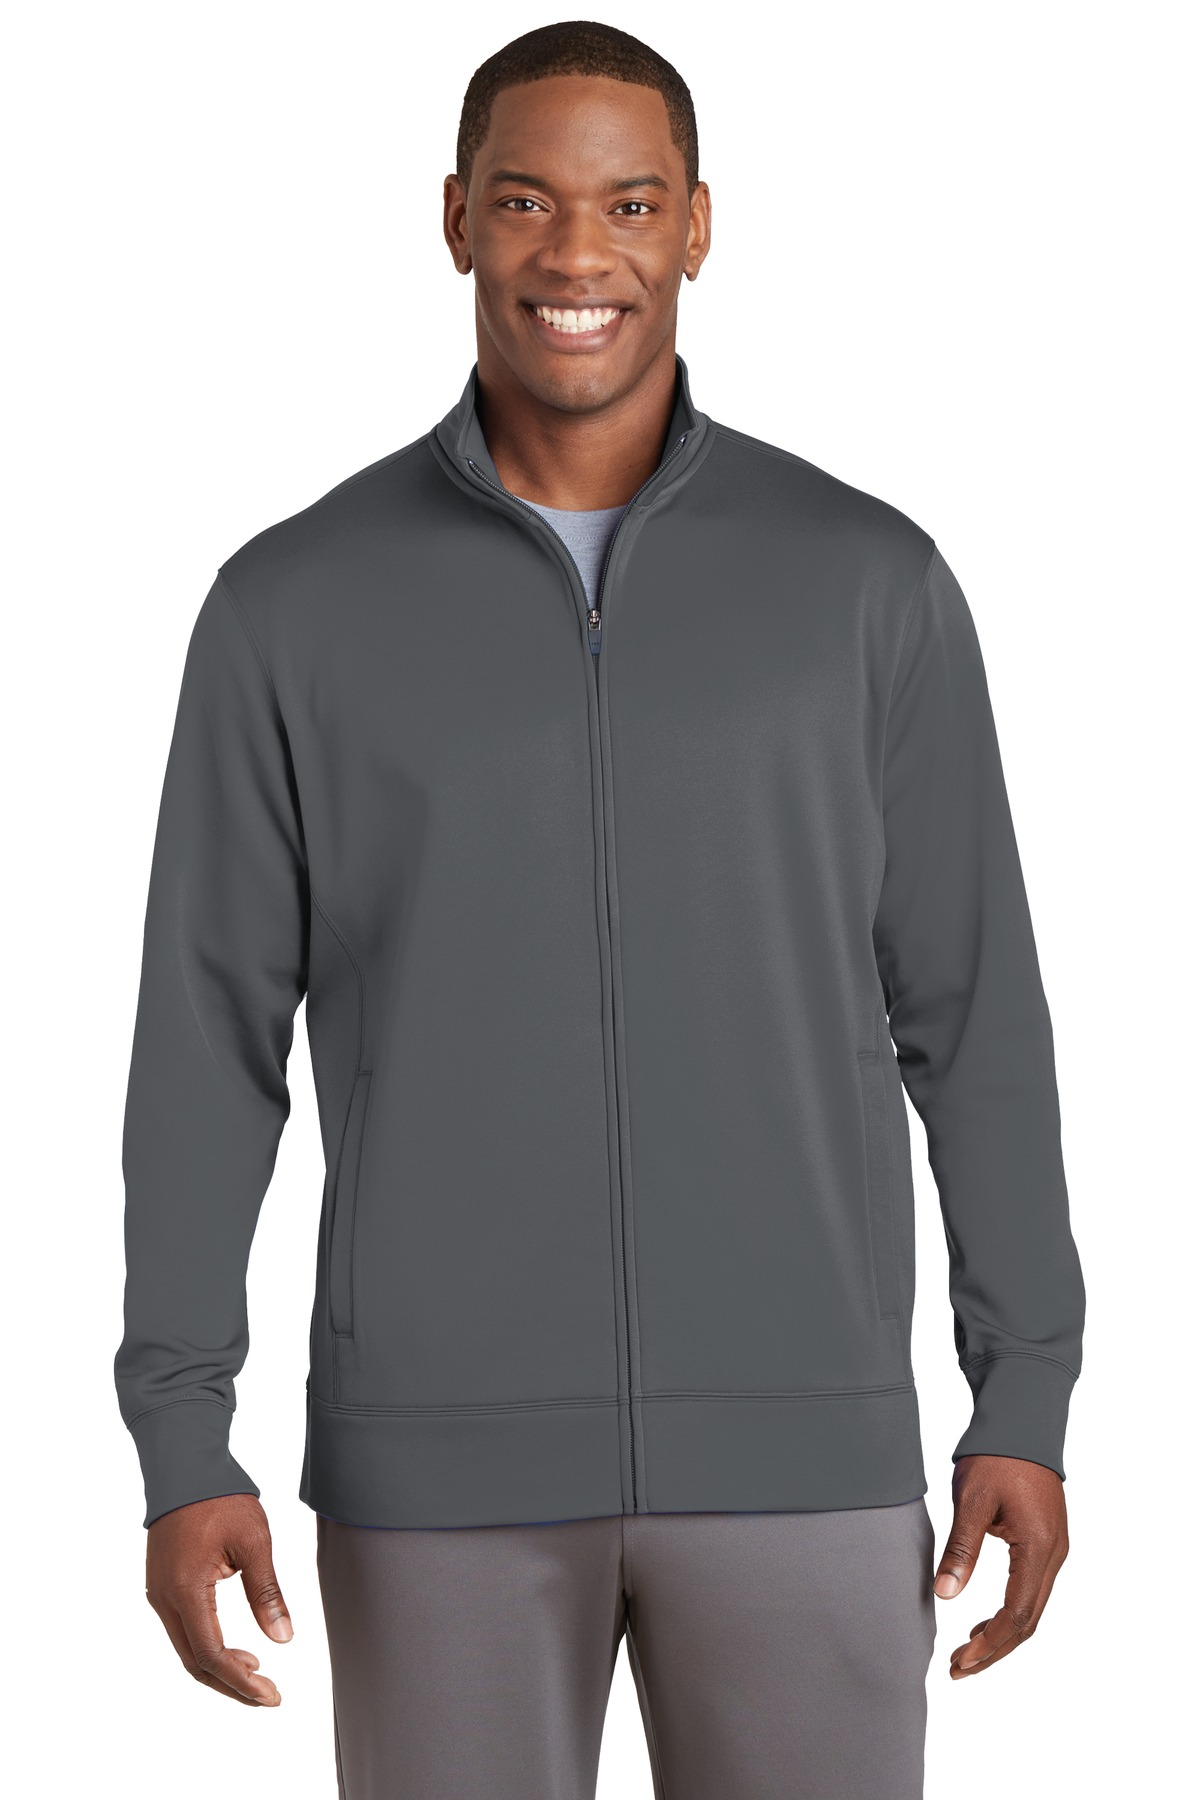 Sport-Tek ®  Sport-Wick ®  Fleece Full-Zip Jacket.  ST241 - Dark Smoke Grey